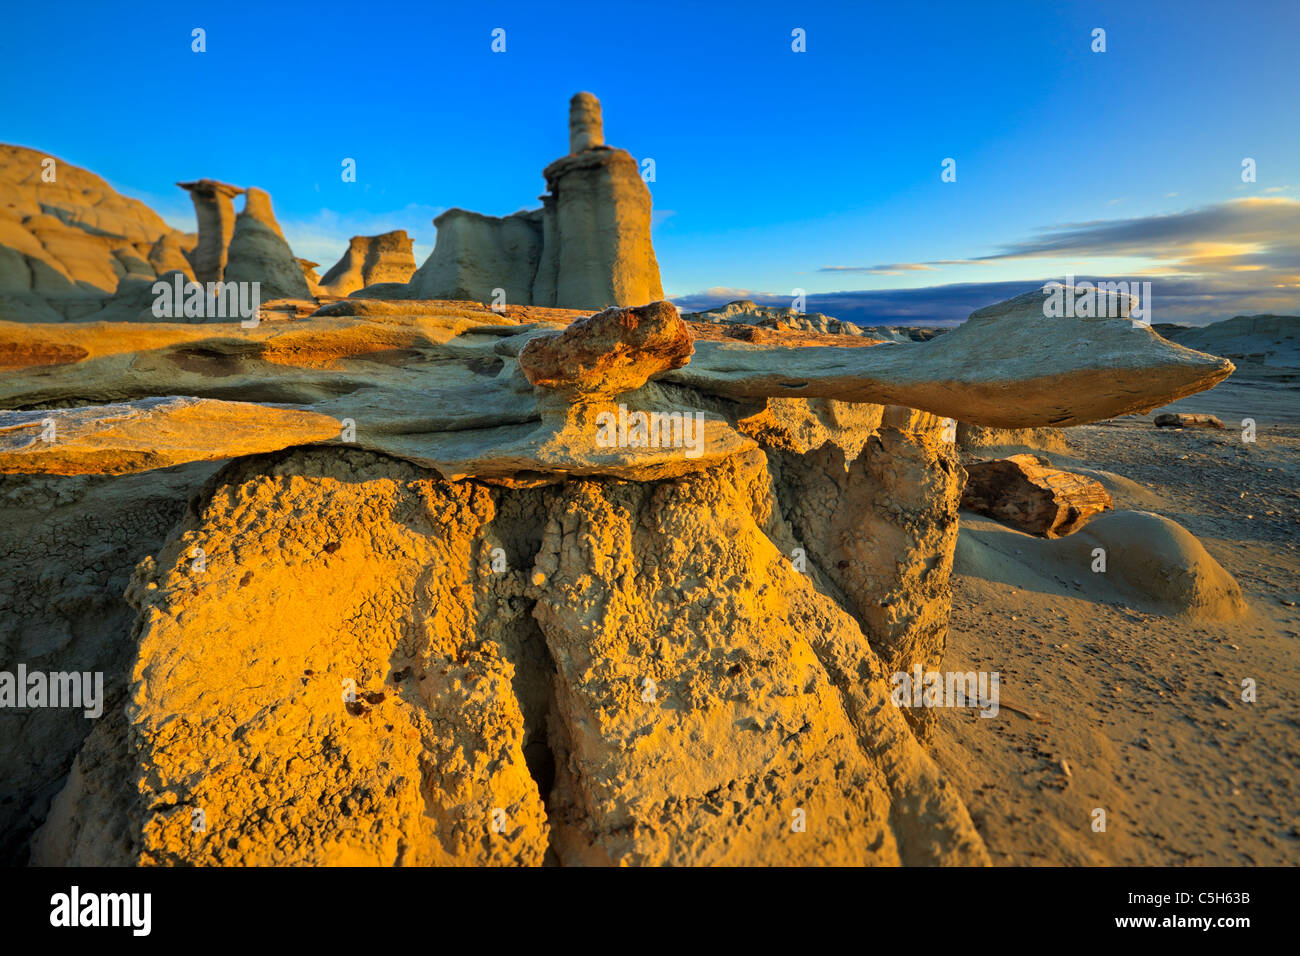 Bisti & De Na Zin Wilderness, New Mexico, USA Stockbild